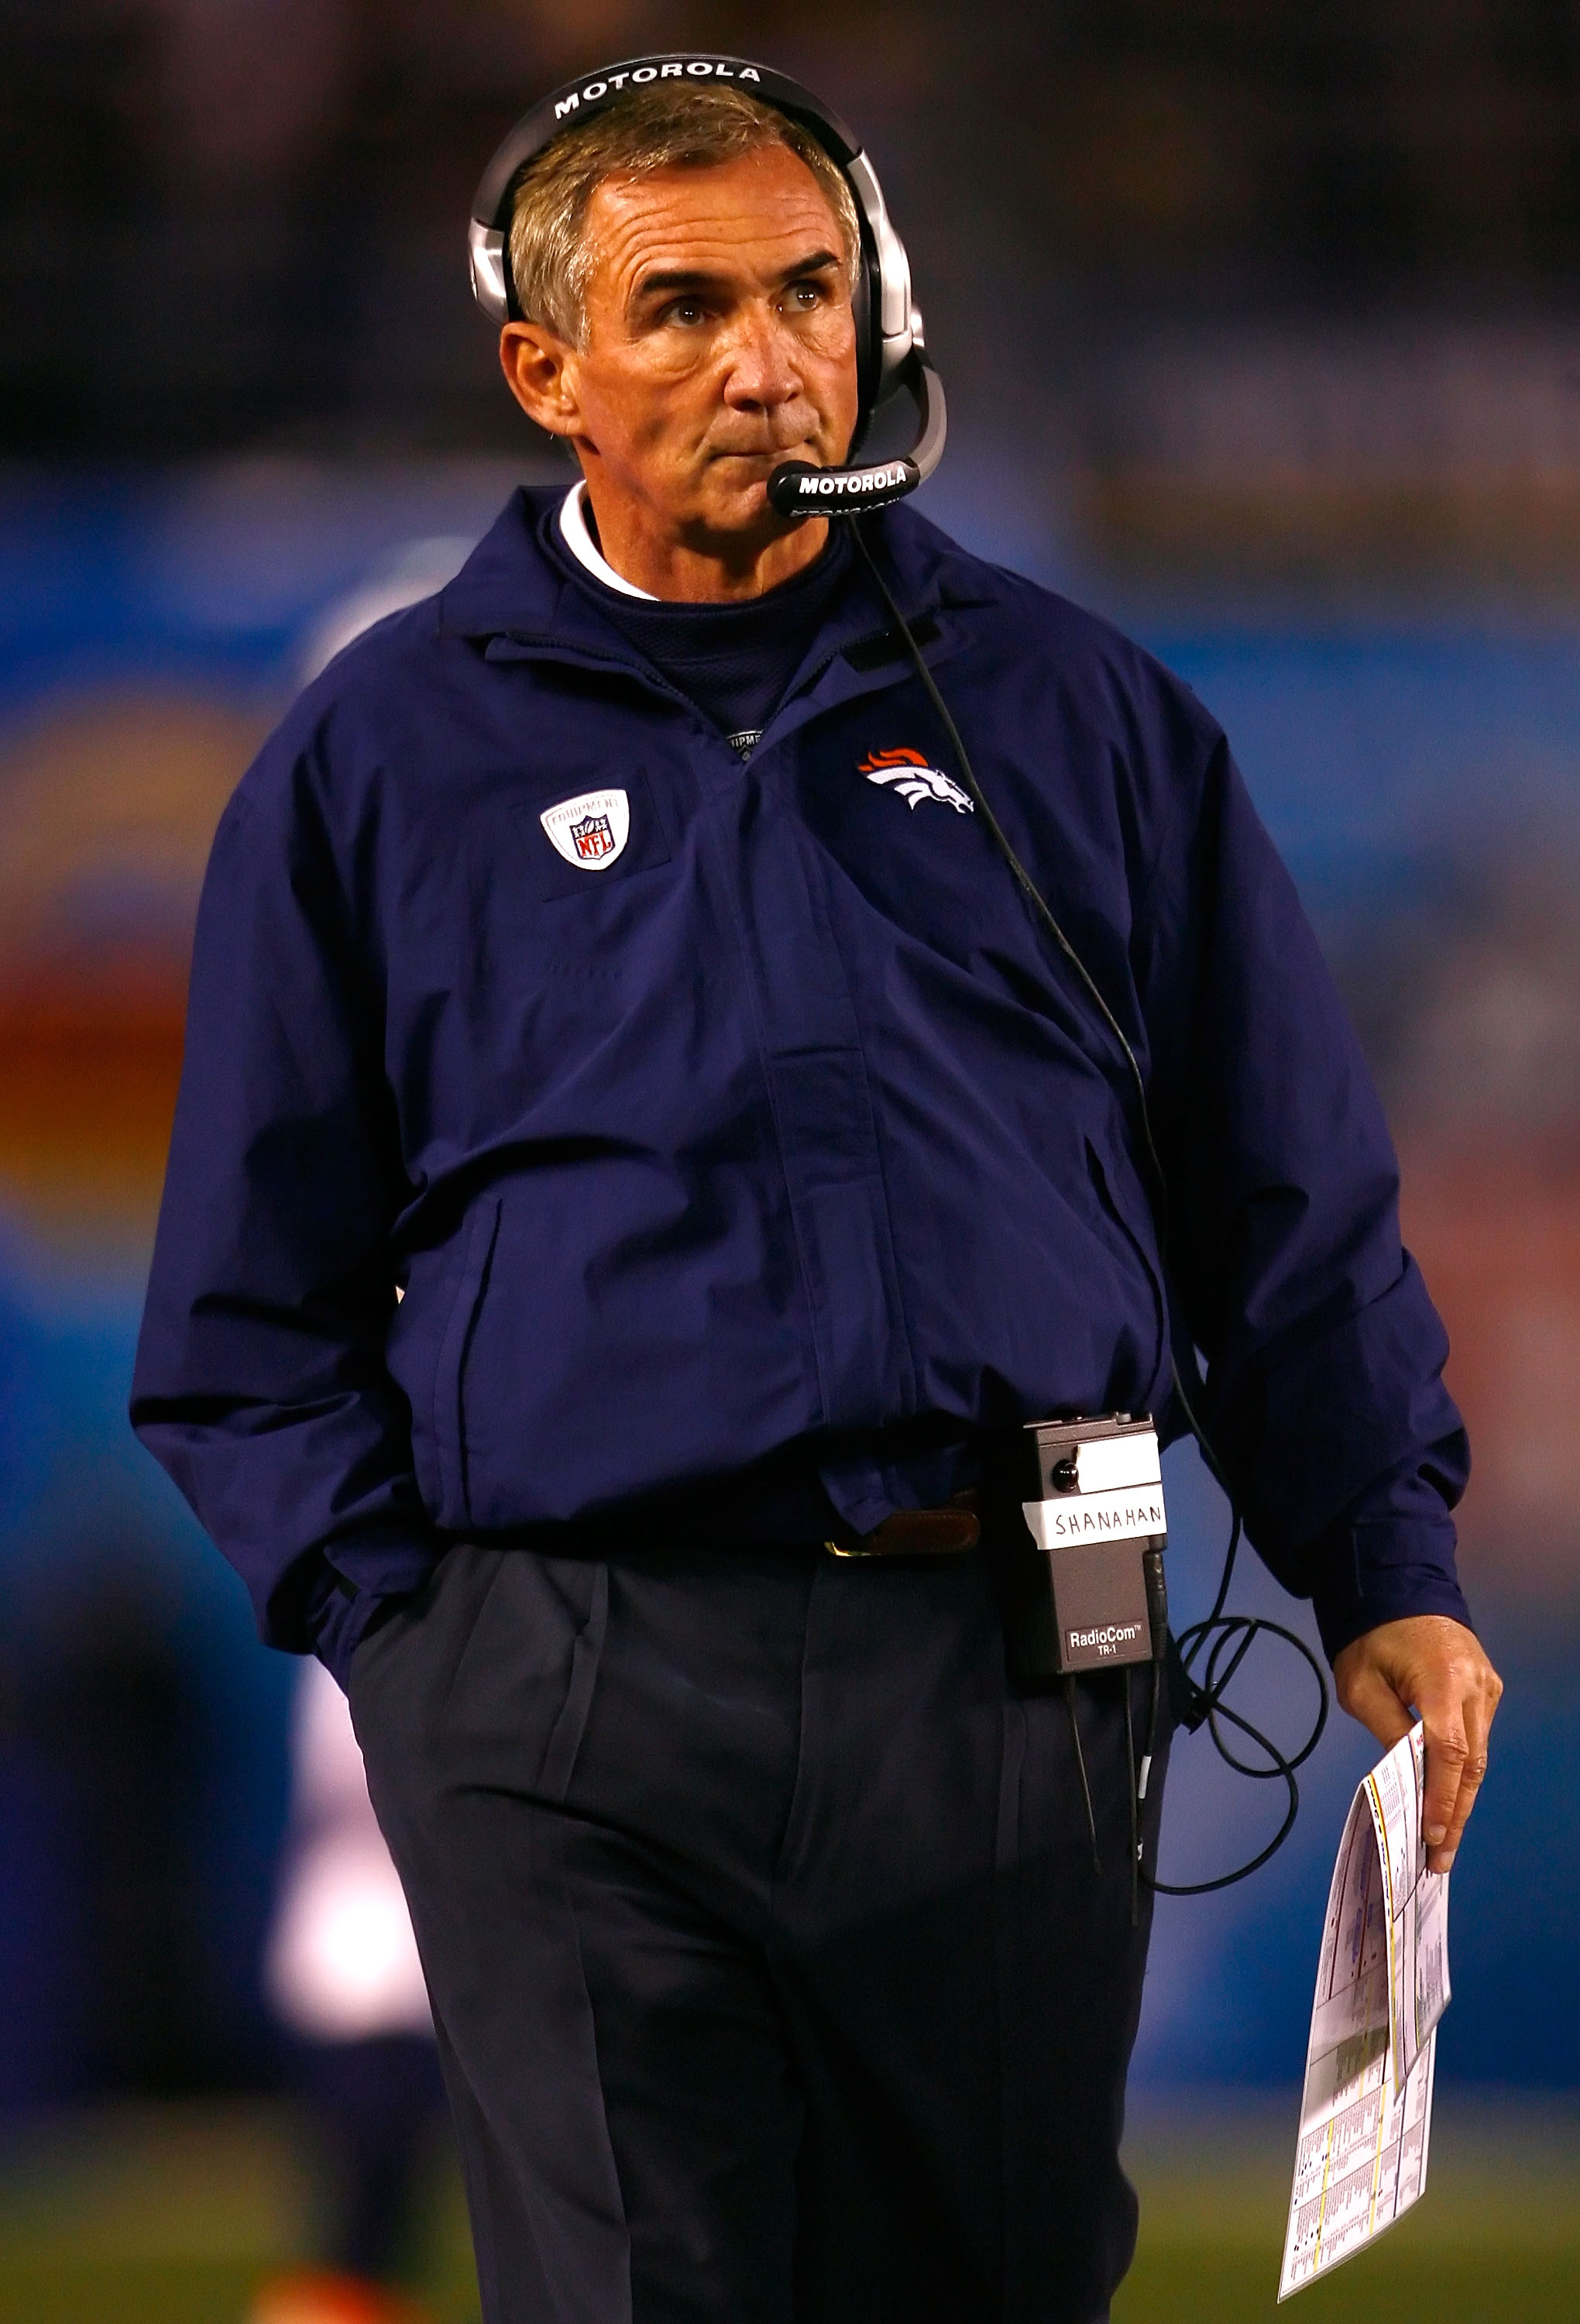 SAN DIEGO - DECEMBER 28:  Head coach Mike Shanahan of the Denver Broncos walks the sidelines during the NFL game against the San Diego Chargers at Qualcomm Stadium on December 28, 2008 in San Diego, California.  (Photo by Jeff Gross/Getty Images)